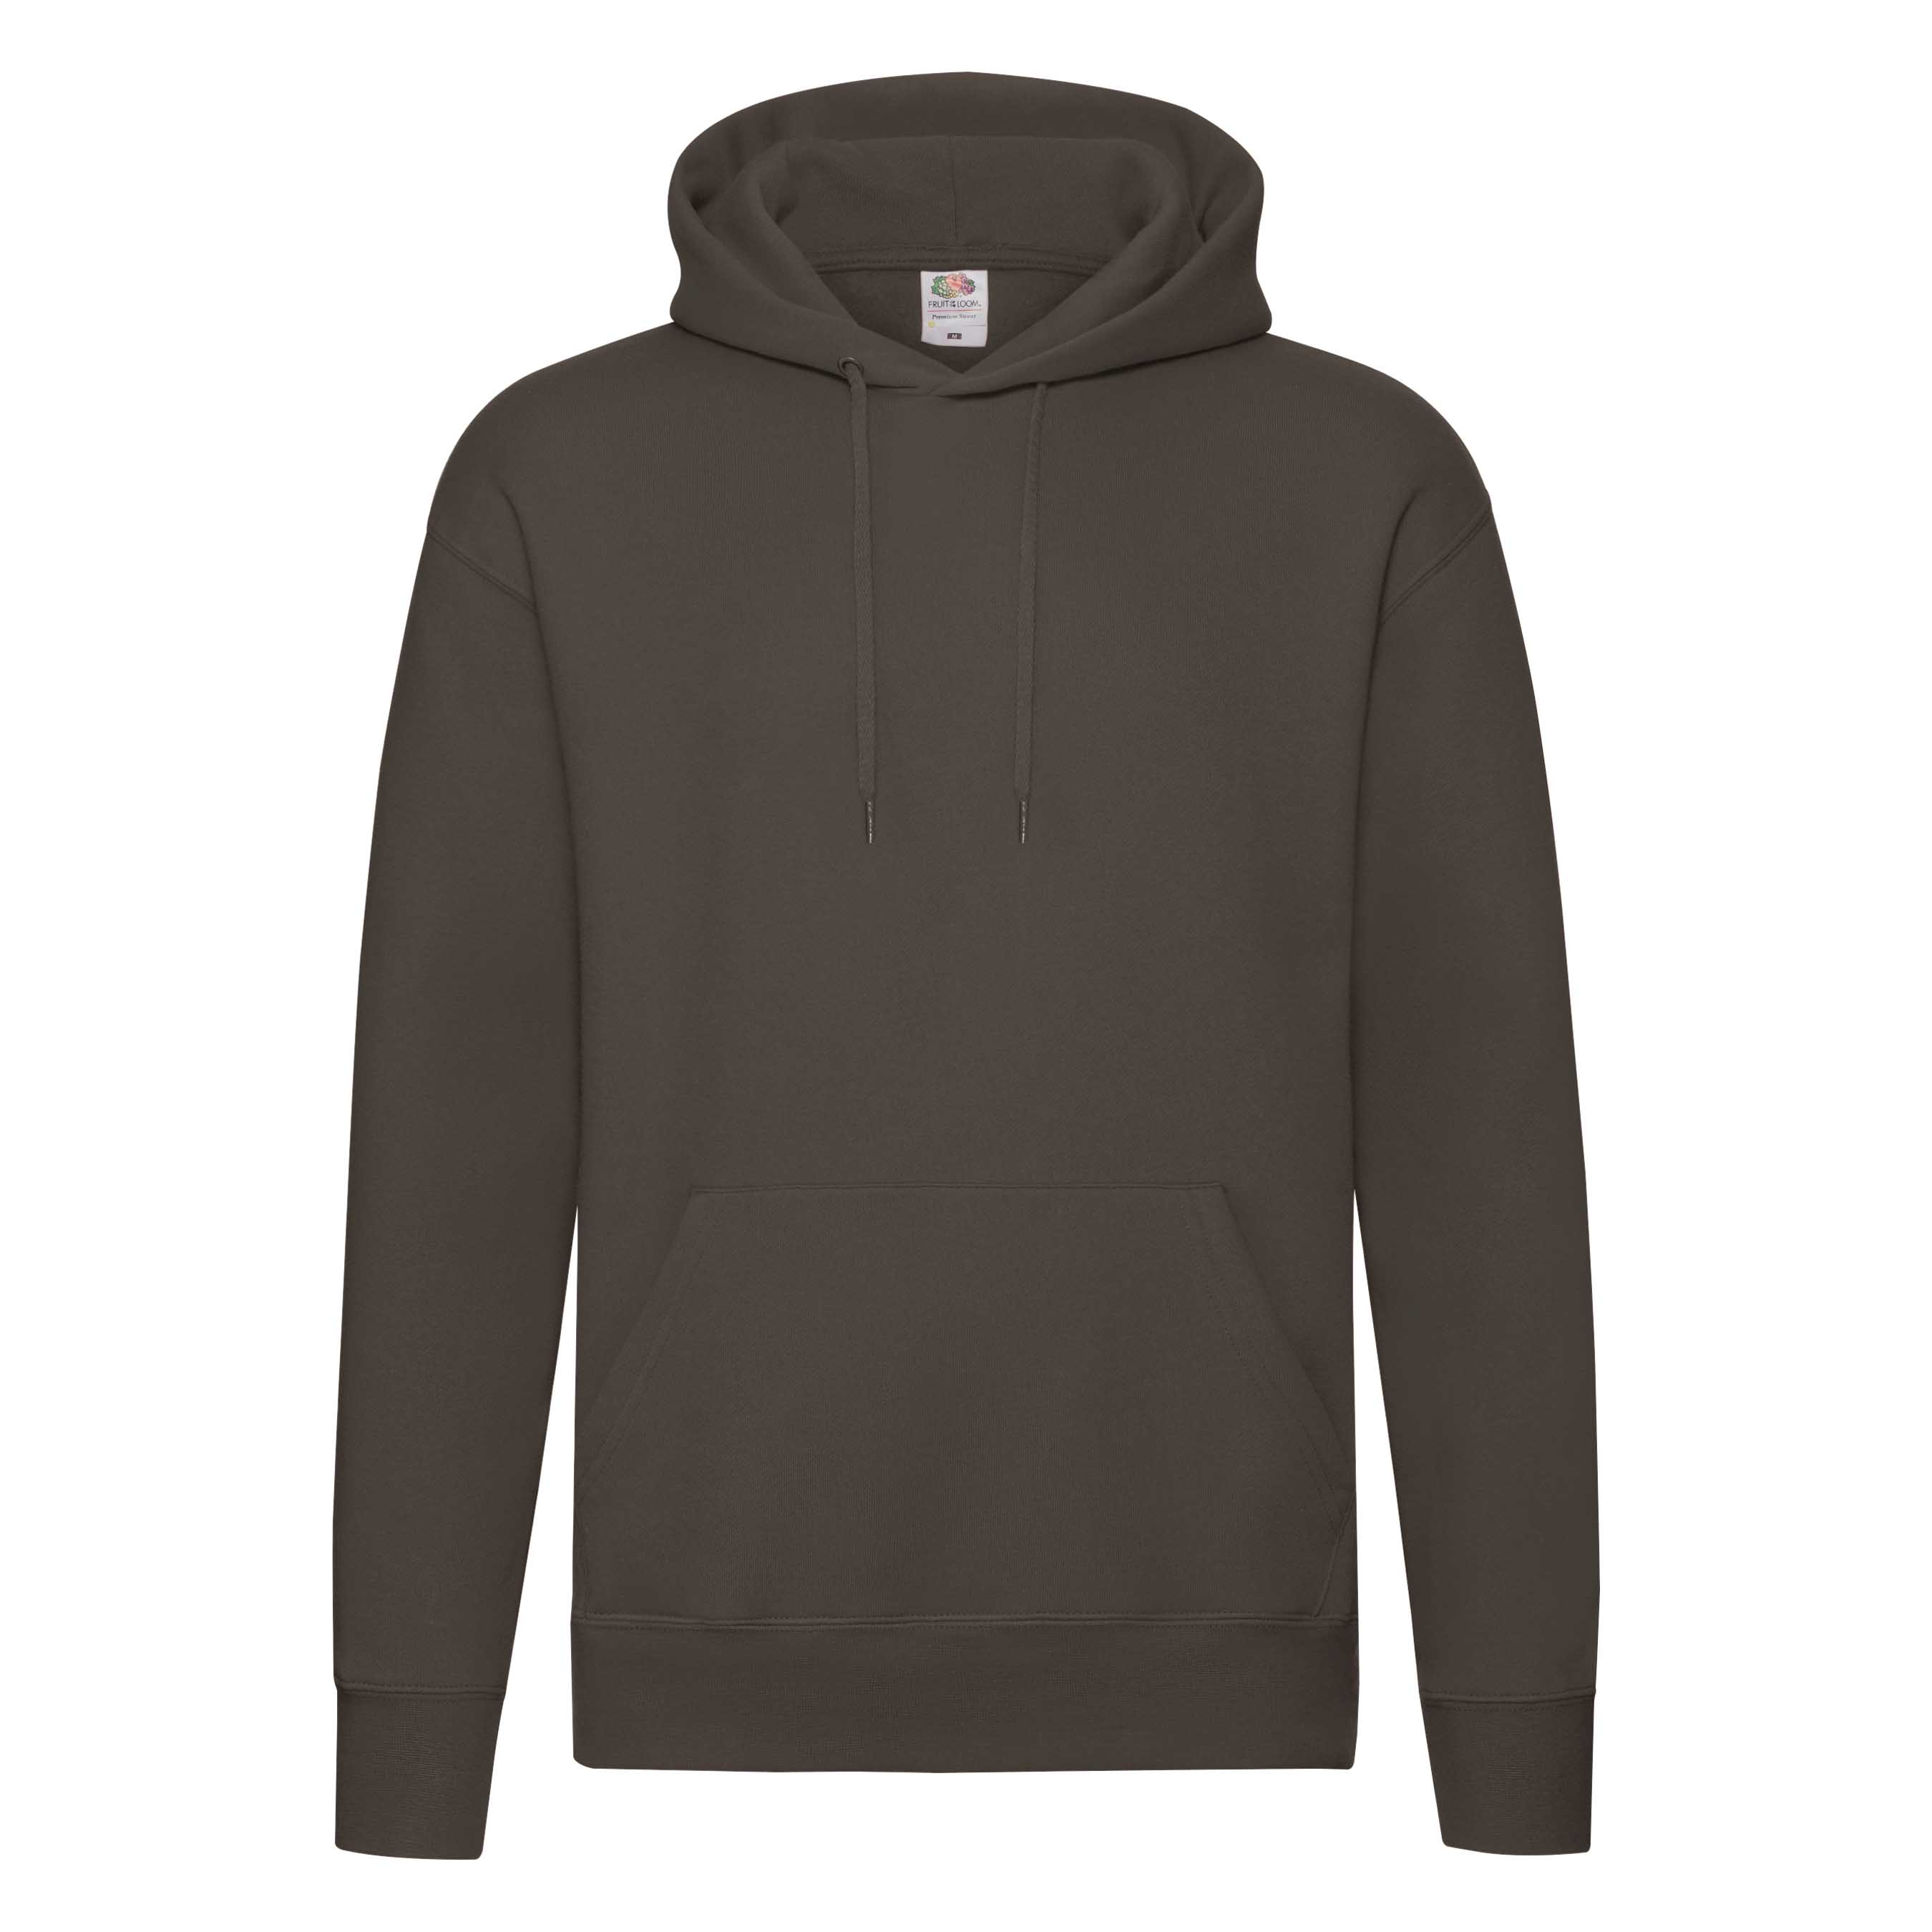 Bluza z kapturem Hooded Sweat Premium | Fruit of the Loom